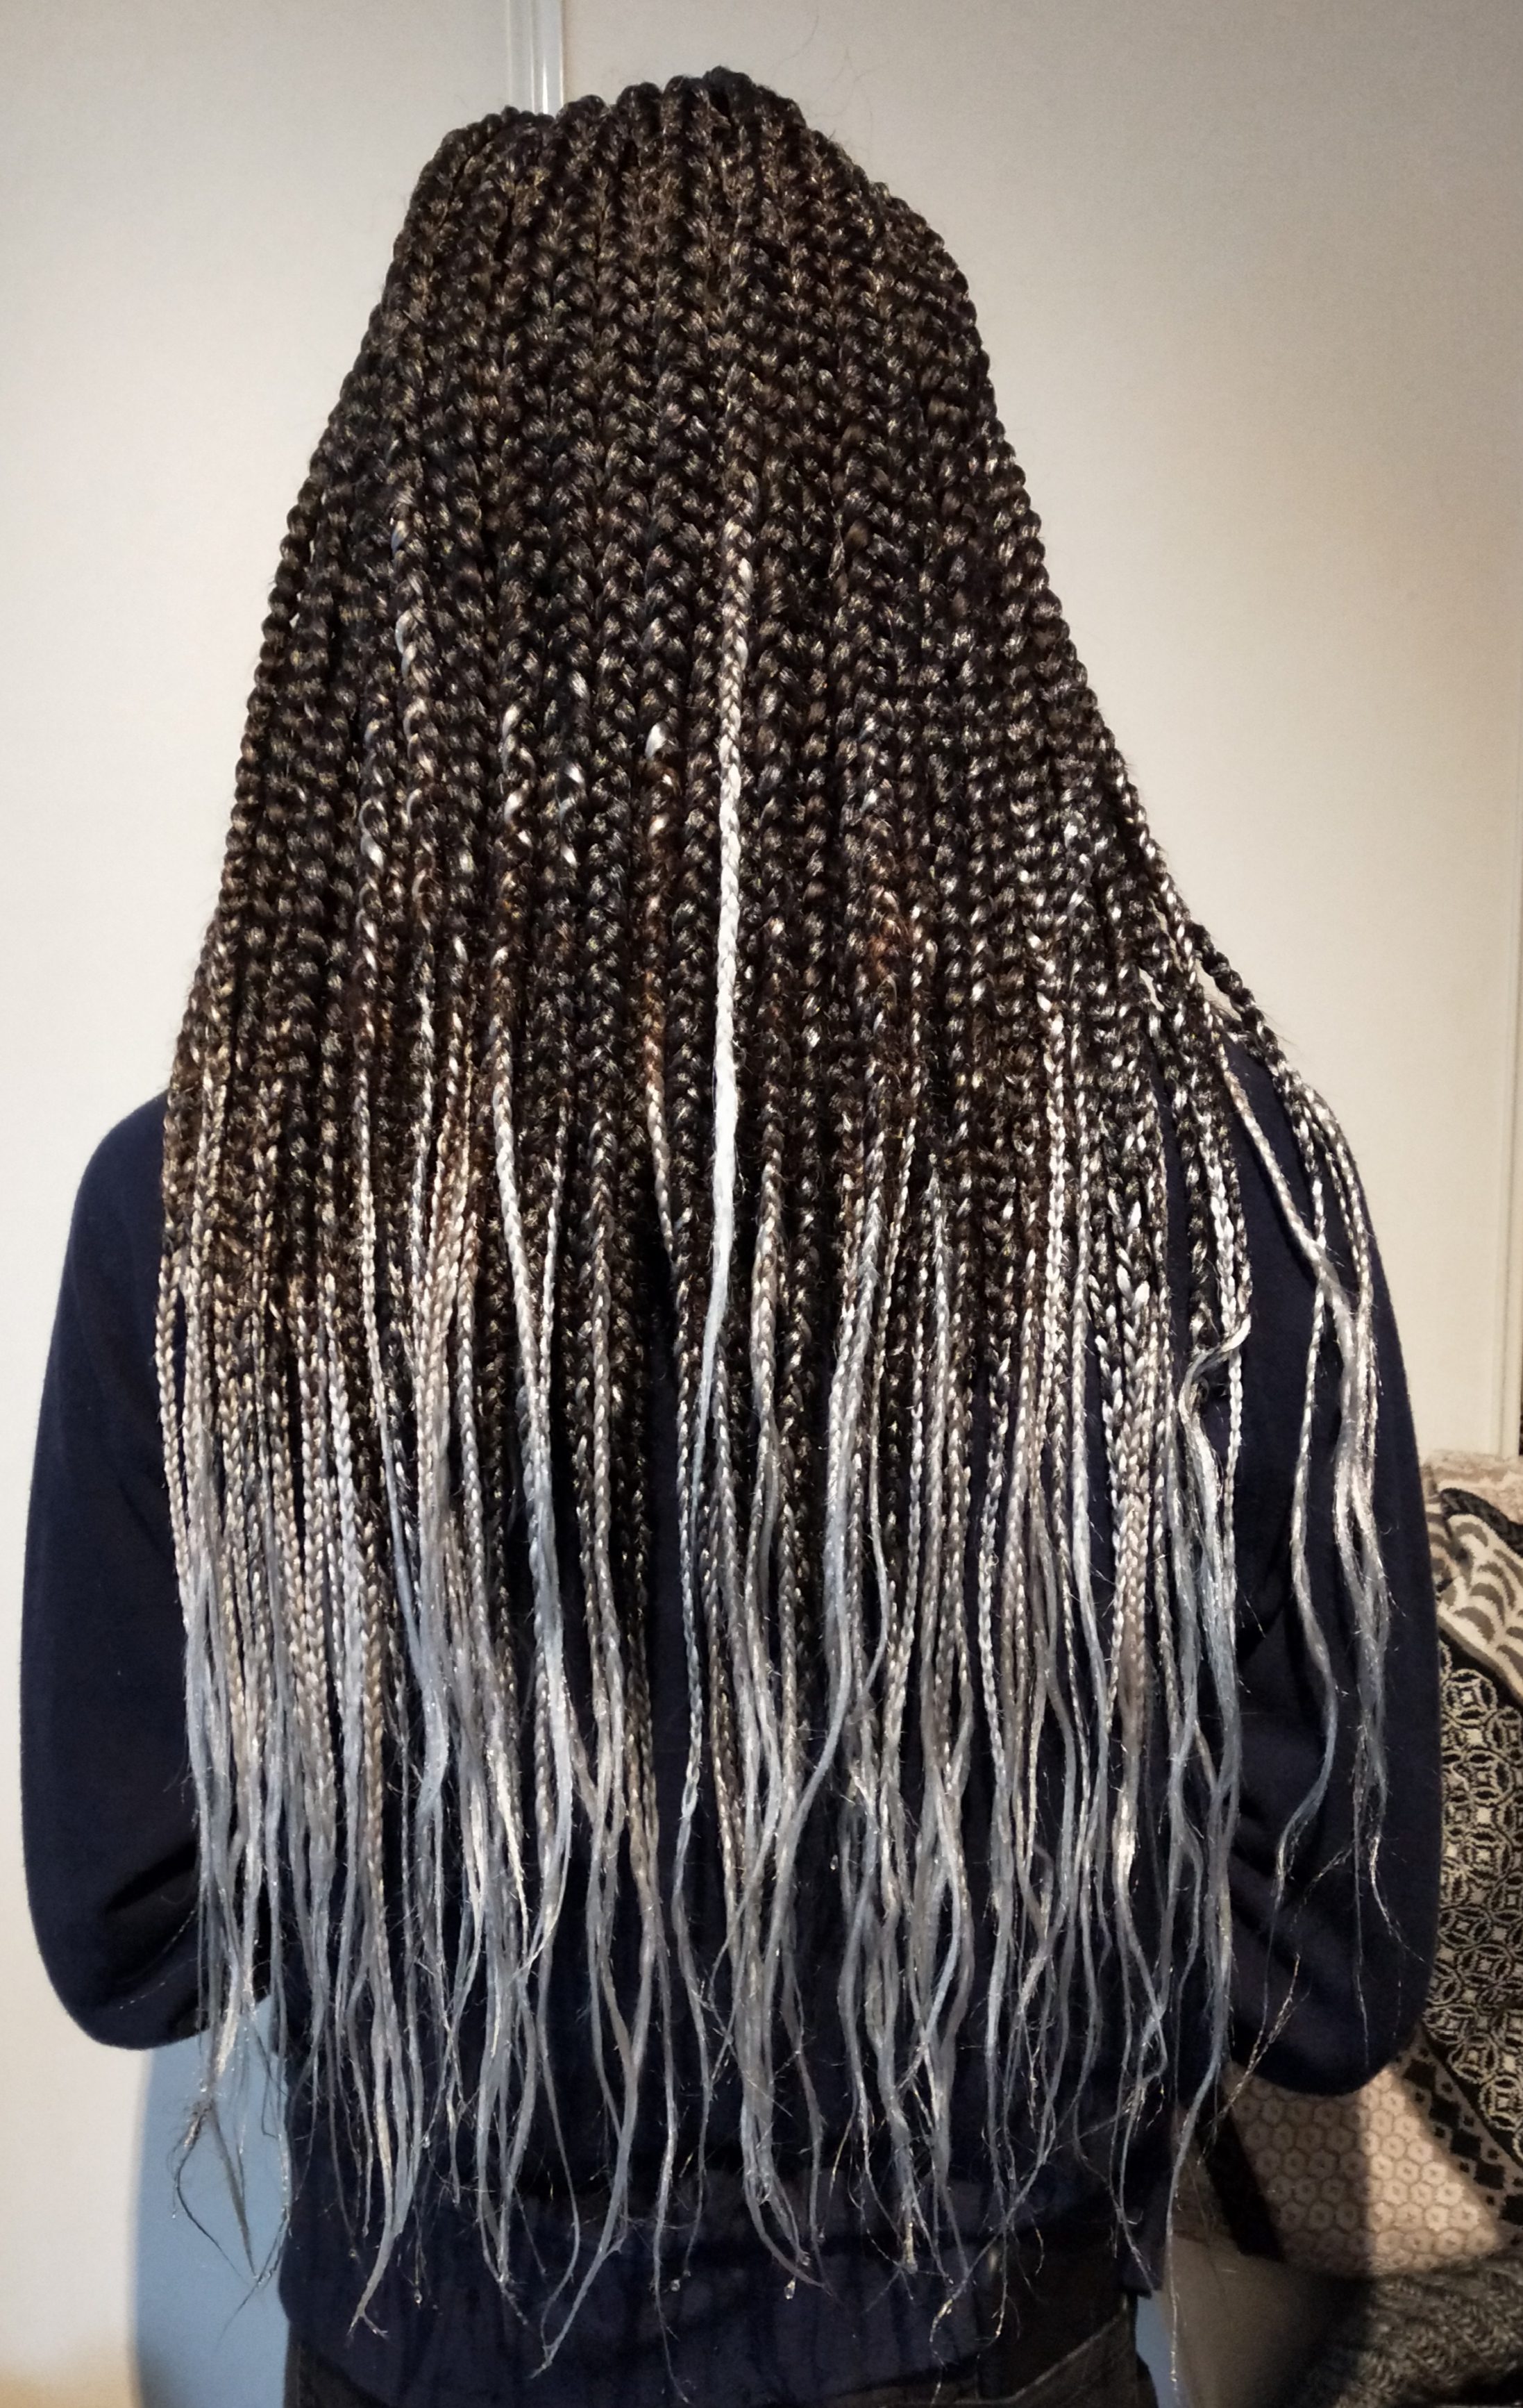 salon de coiffure afro tresse tresses box braids crochet braids vanilles tissages paris 75 77 78 91 92 93 94 95 FCHUAUFU